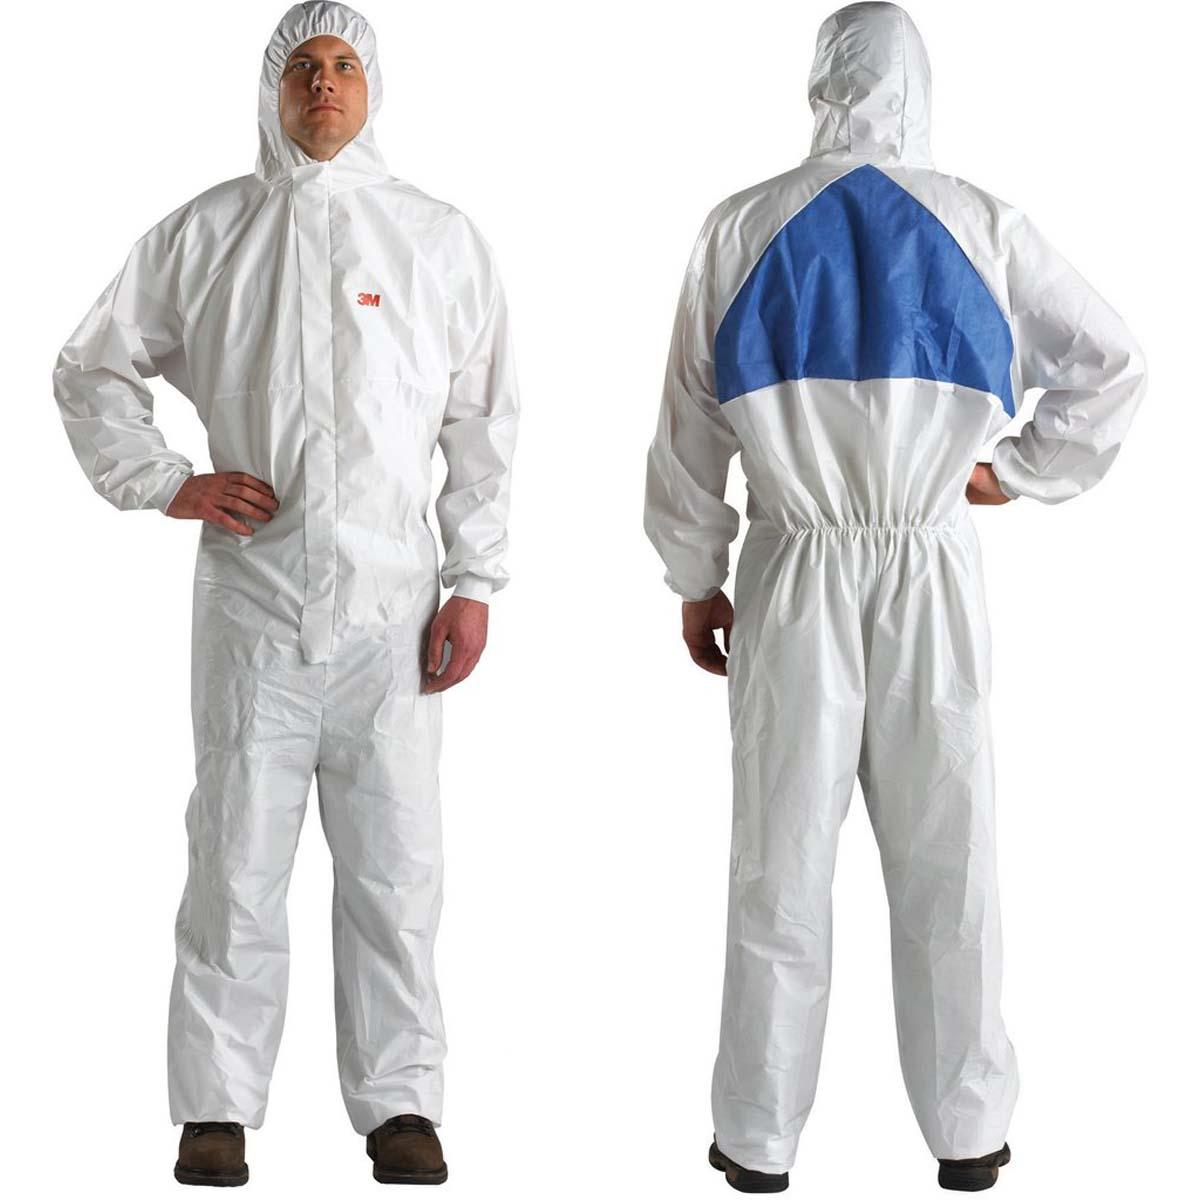 """3Mâ""""¢ Disposable Protective Coverall Safety Work Wear 4540+BLK-3XL"""